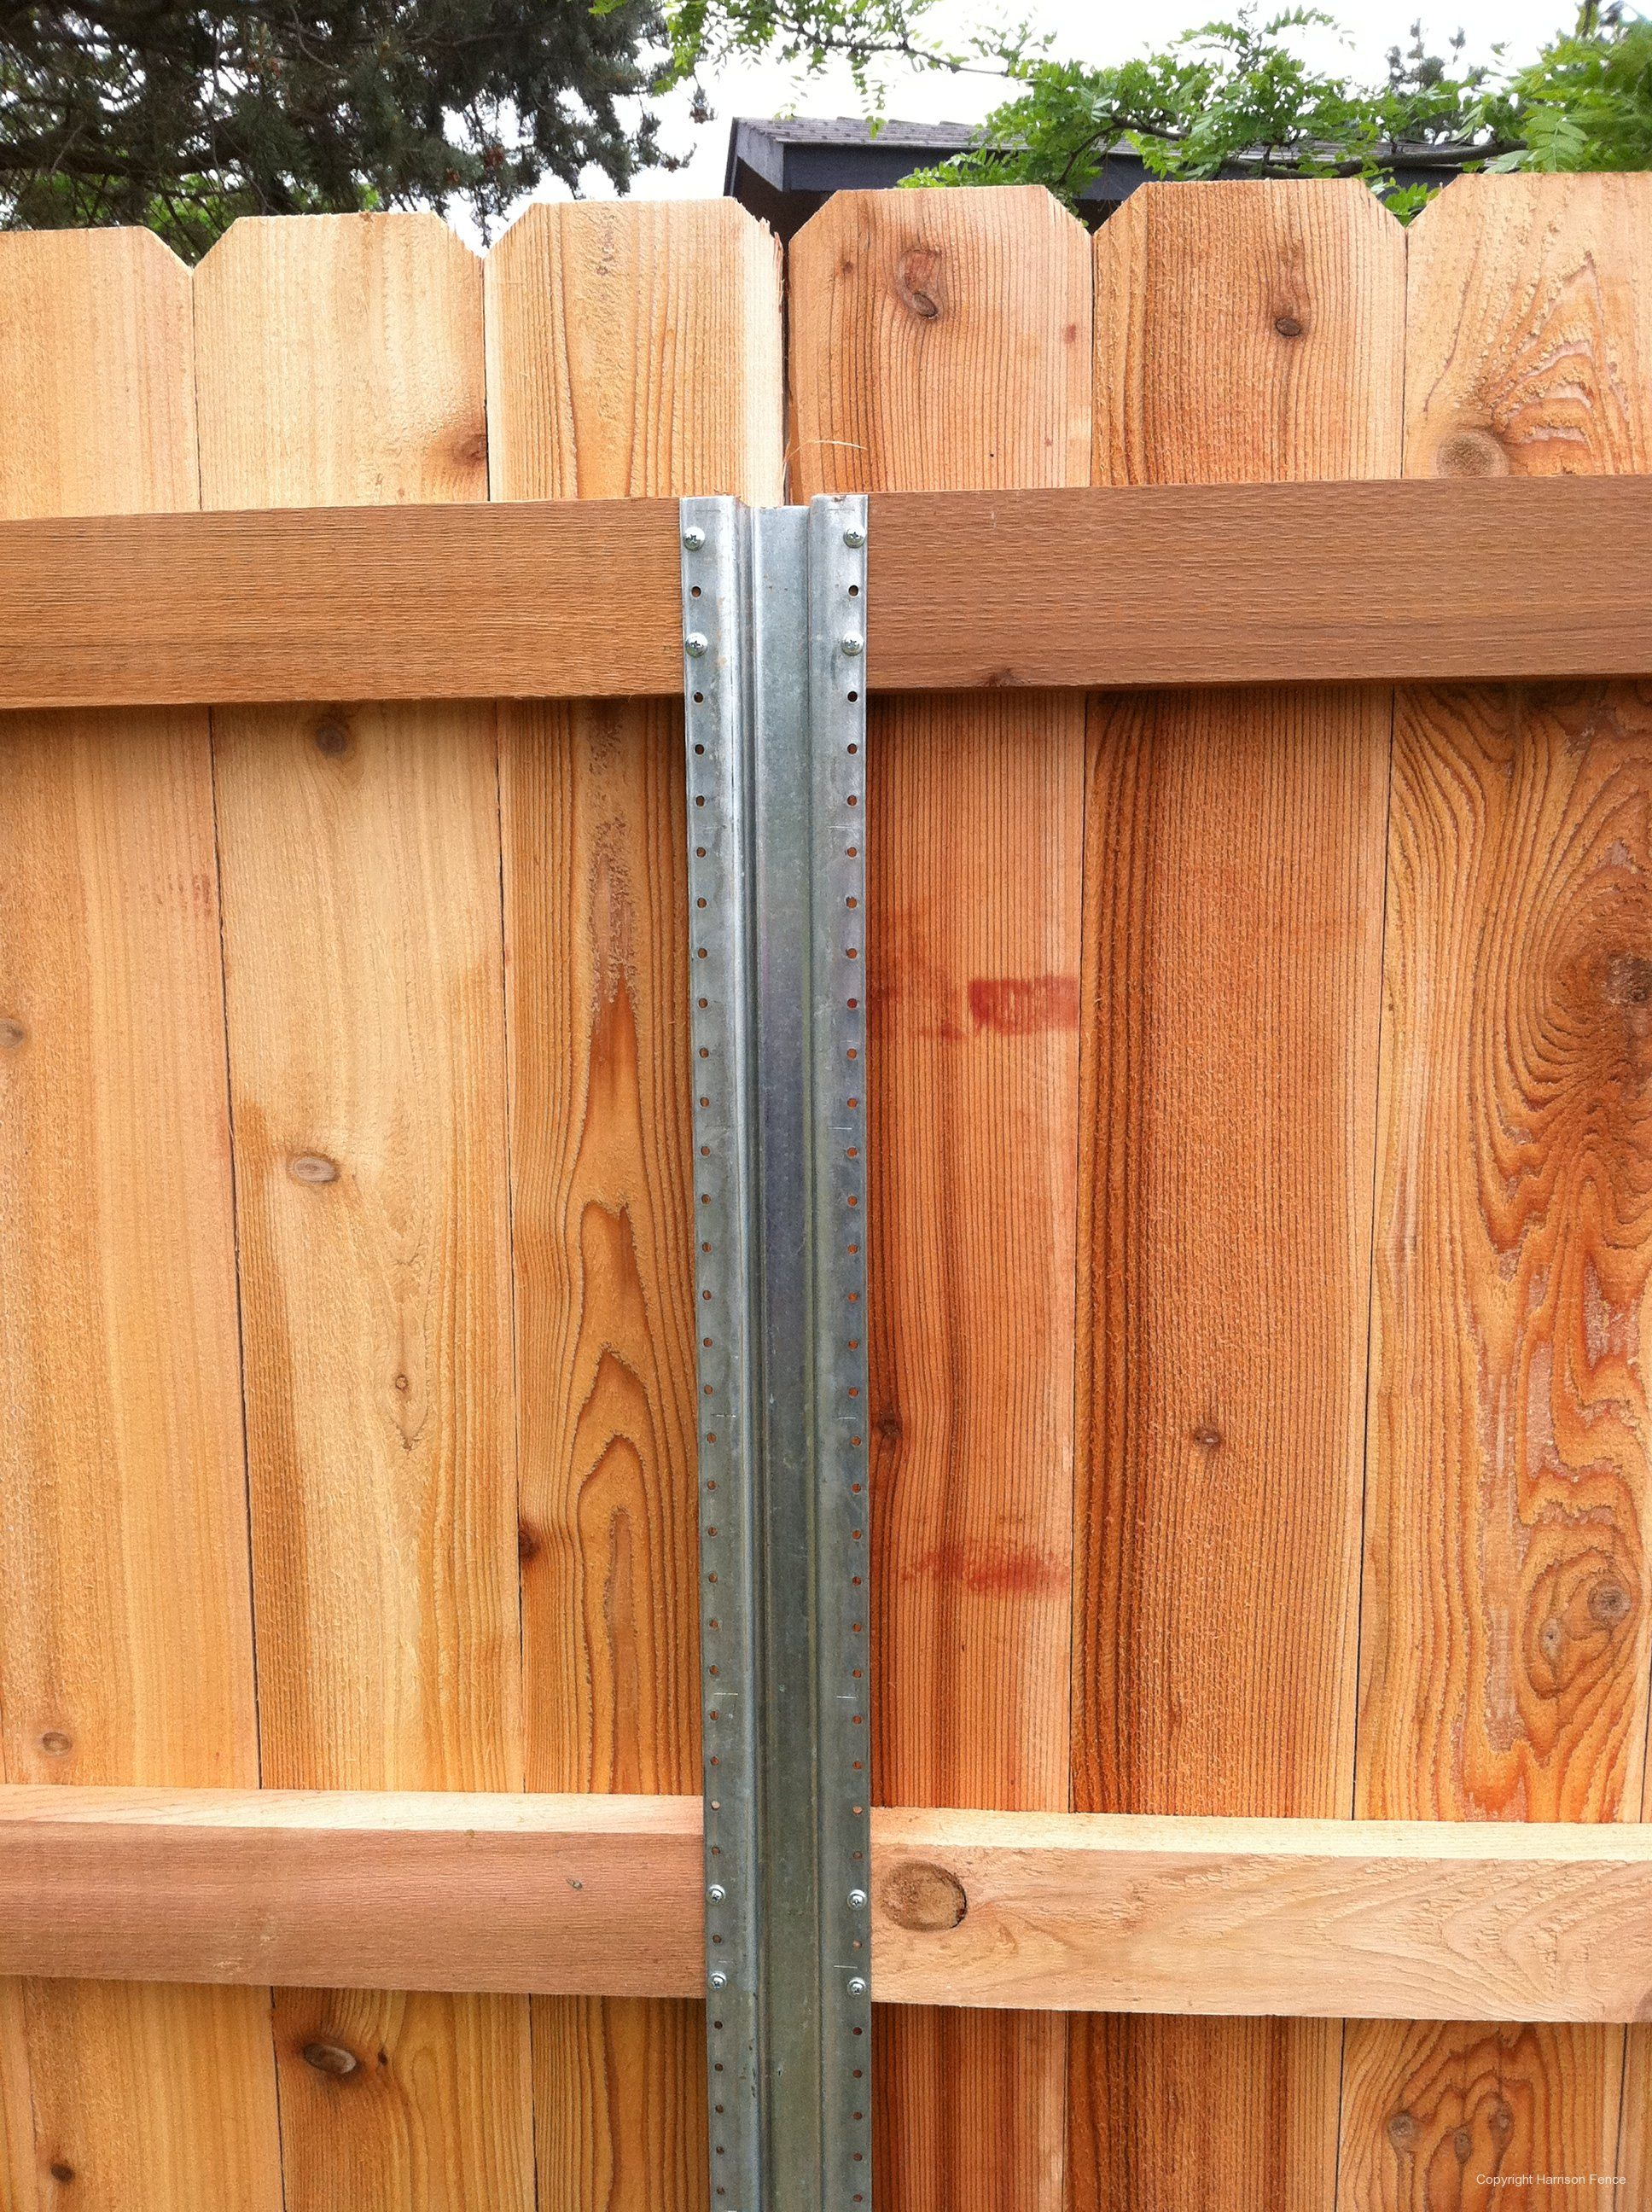 Metal fence post for wood fence | Yard in 2018 | Pinterest ...